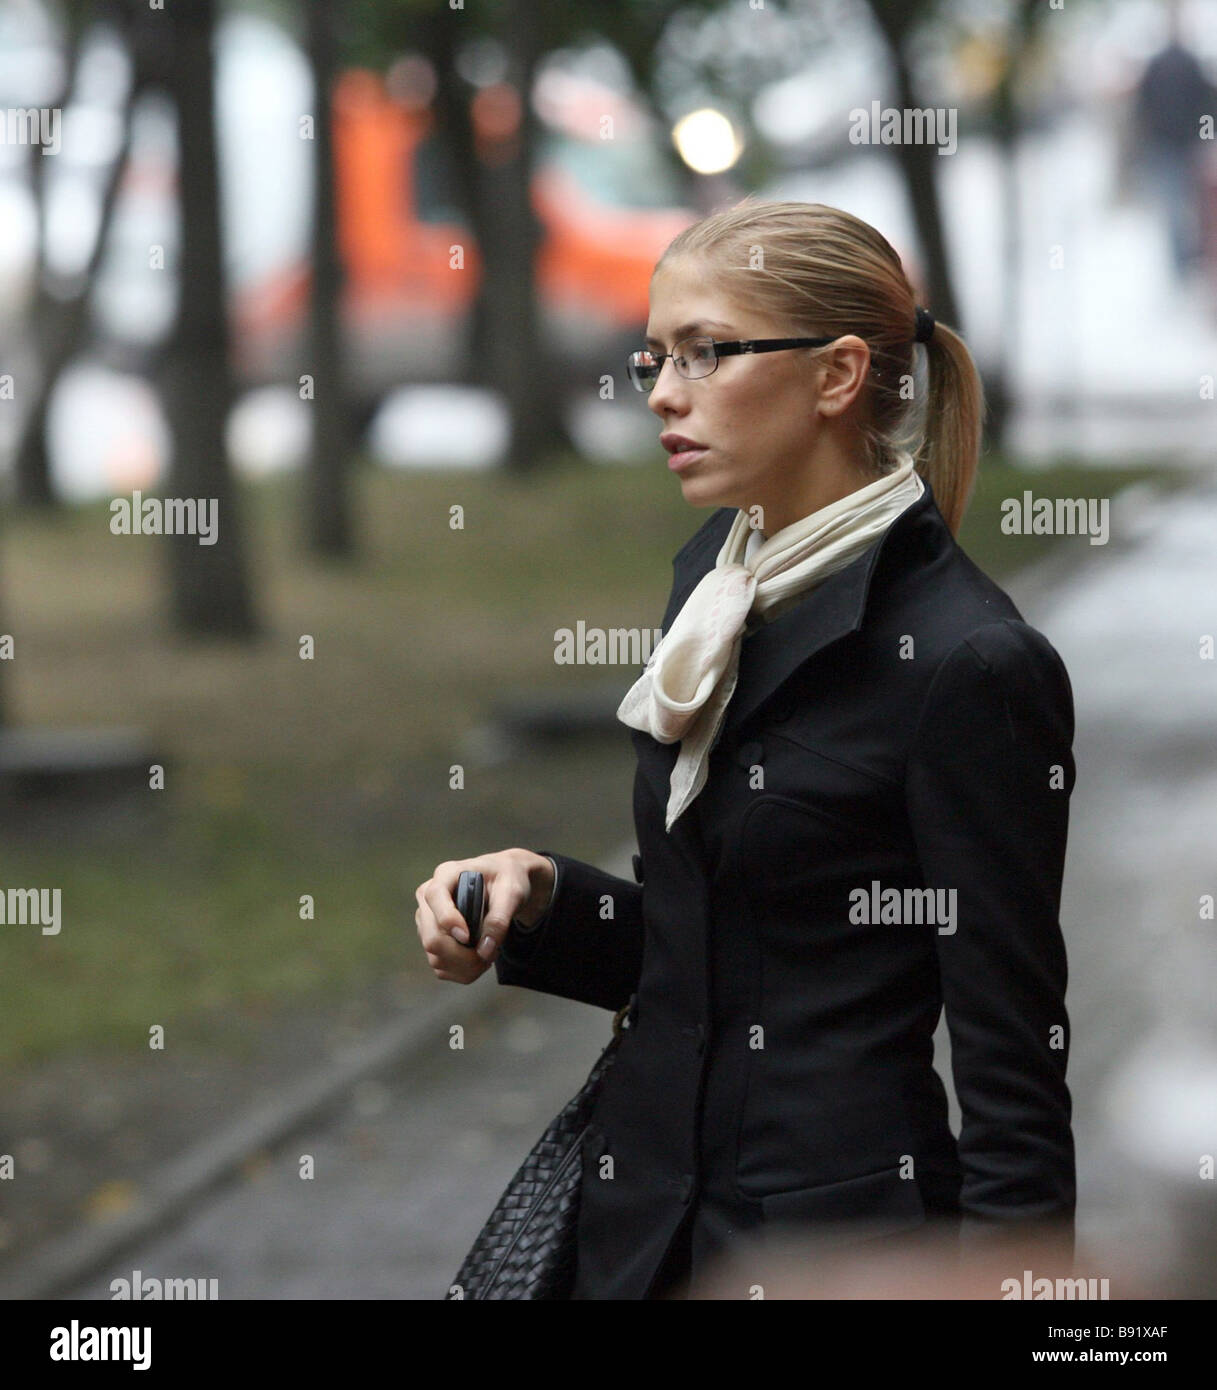 Playboy photo model 21 years old Yelena Perminova near the Central district court in Novosibirsk after the court - Stock Image